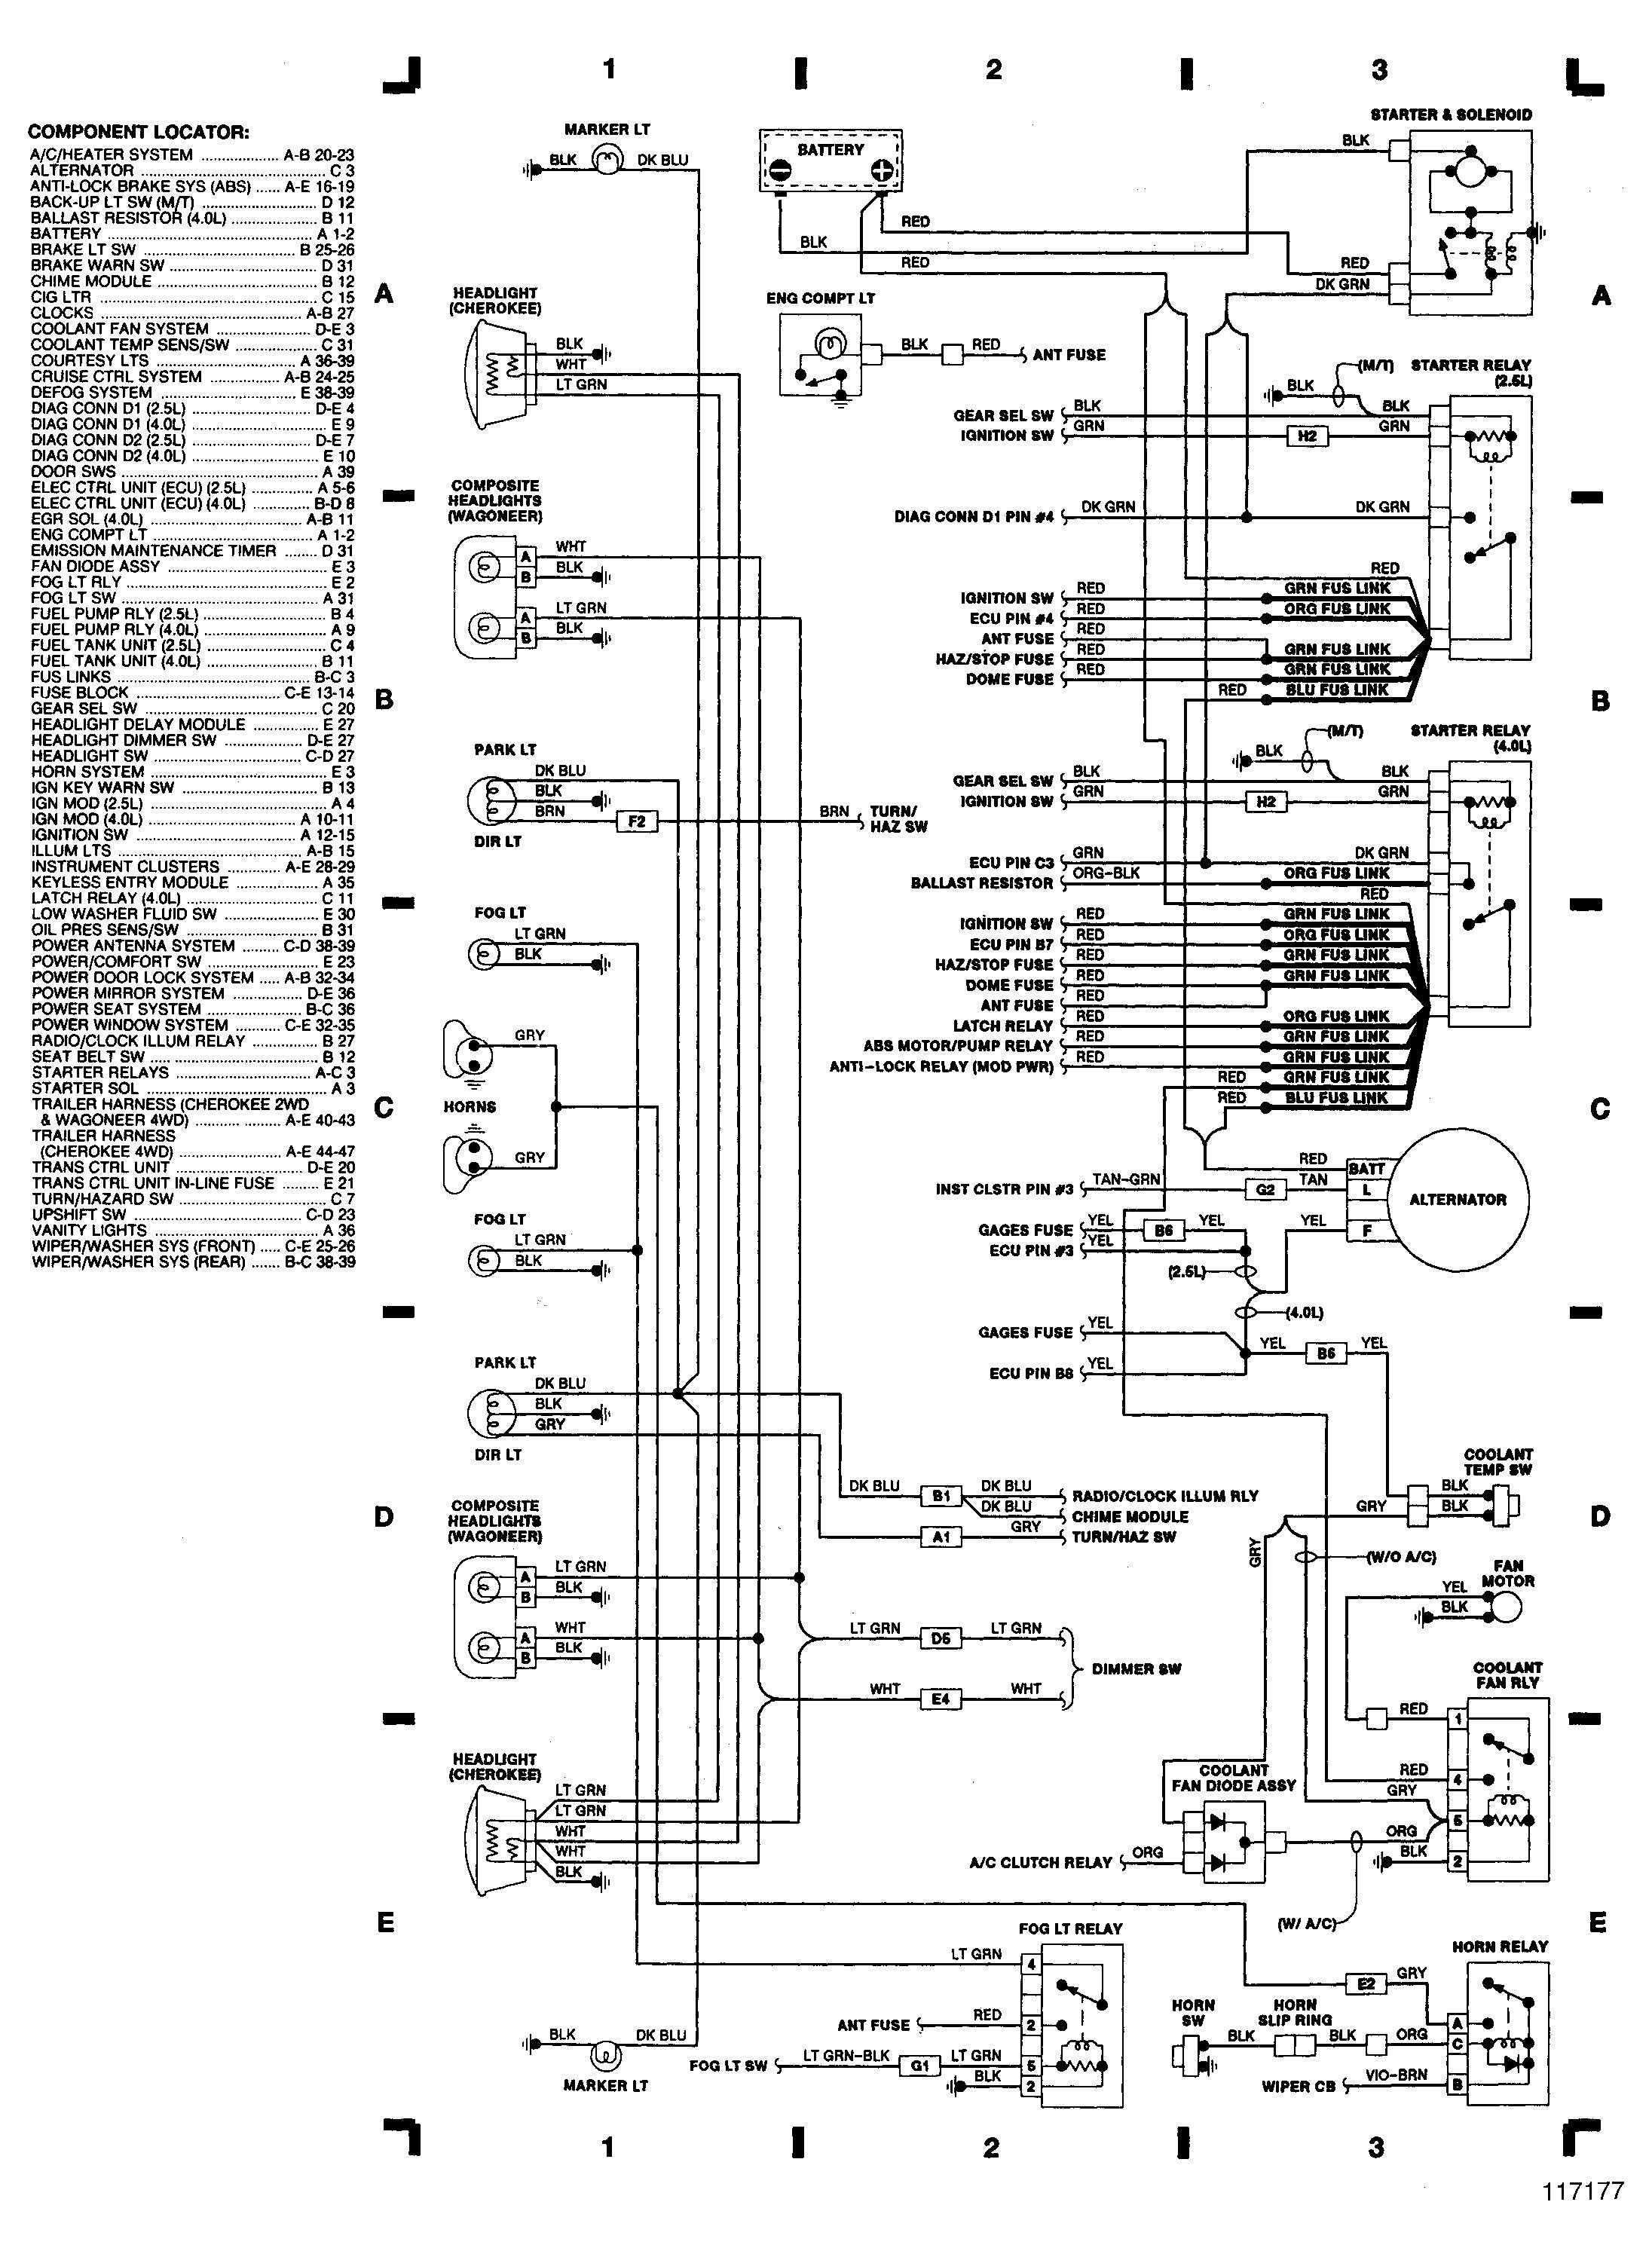 [DIAGRAM_5FD]  Awesome Wiring Diagram Jeep Grand Cherokee #diagrams #digramssample  #diagramimages #wiringdiagramsample #wiringdiagram | Jeep grand cherokee,  Jeep cherokee, Jeep | Light Switch Wiring Diagram For 1974 Cj5 |  | Pinterest